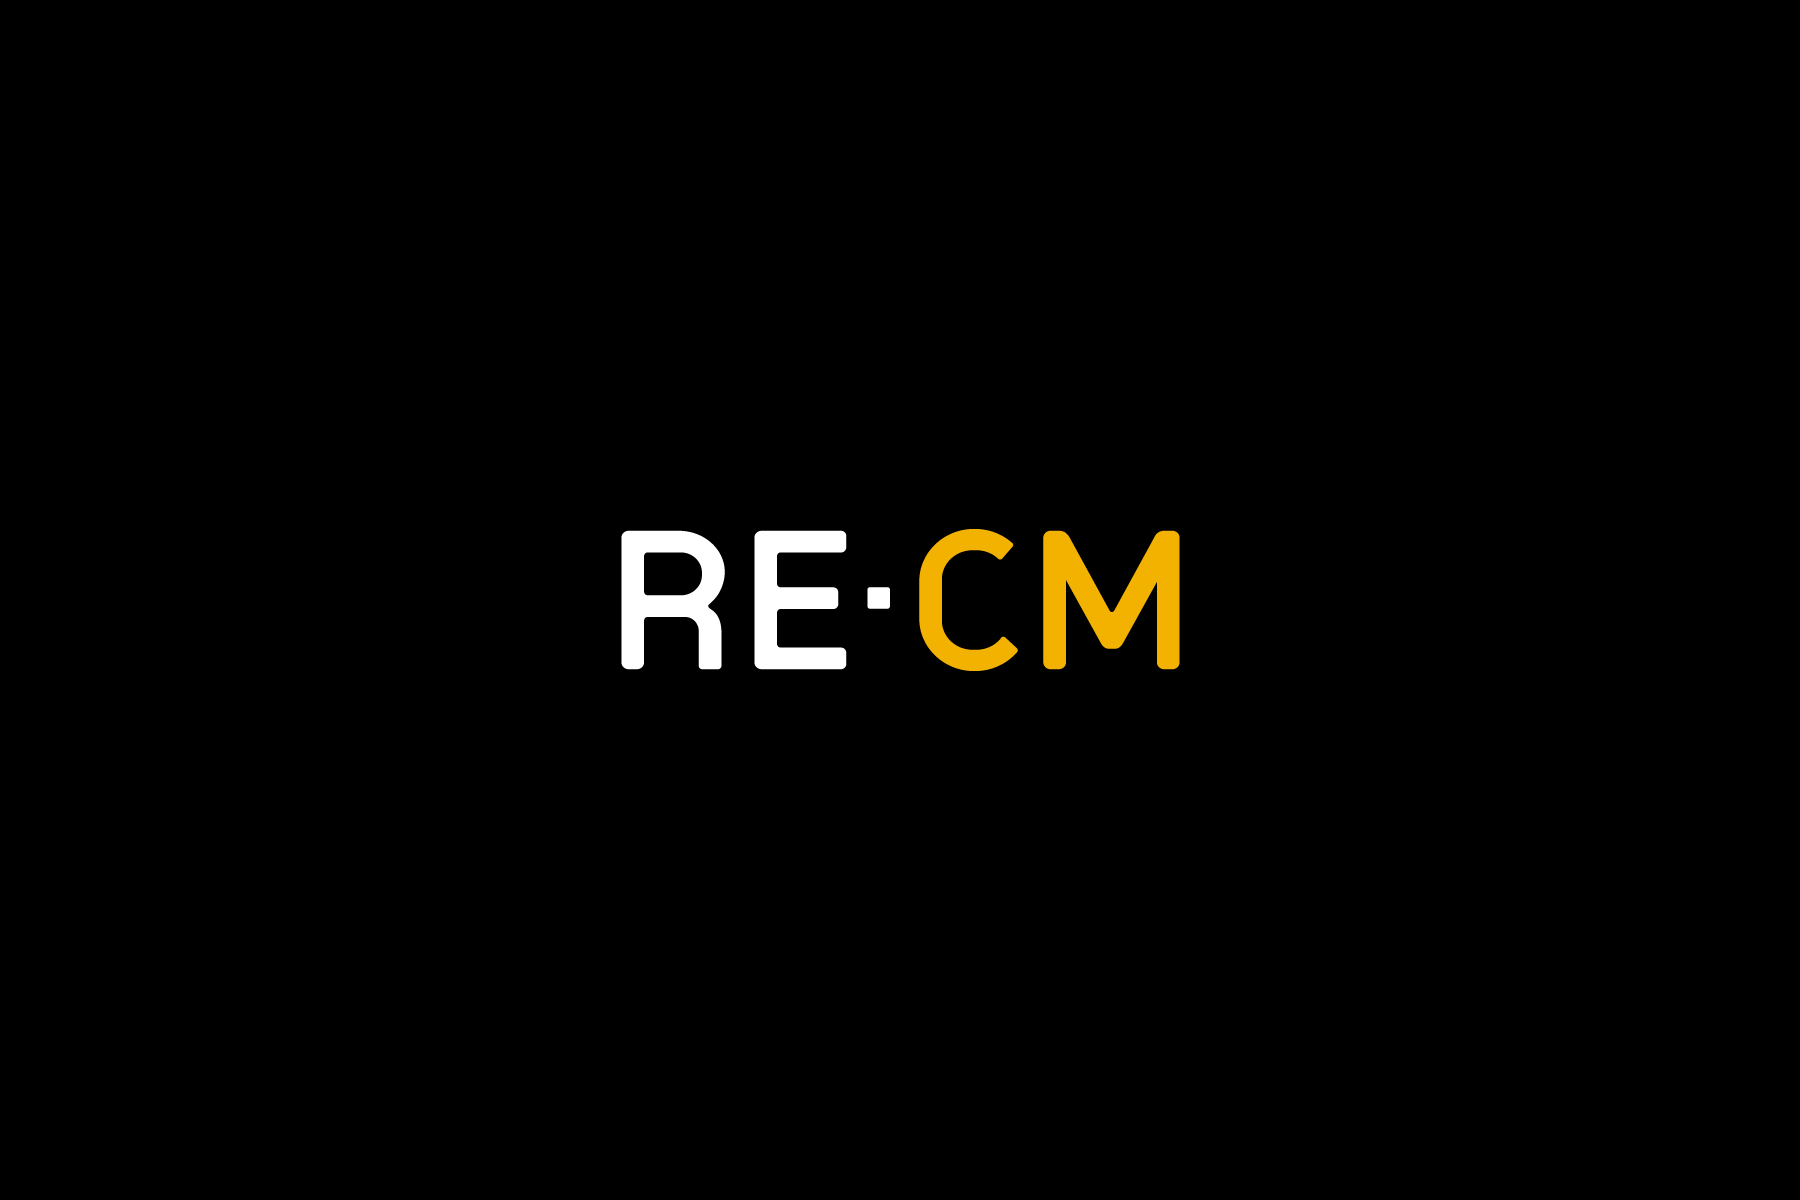 RE•CM came to Firedog with a garish identity (In silver and orange) which did not convey their values. Our first step was to redefine the logotype and create a confident and serious colour palette.